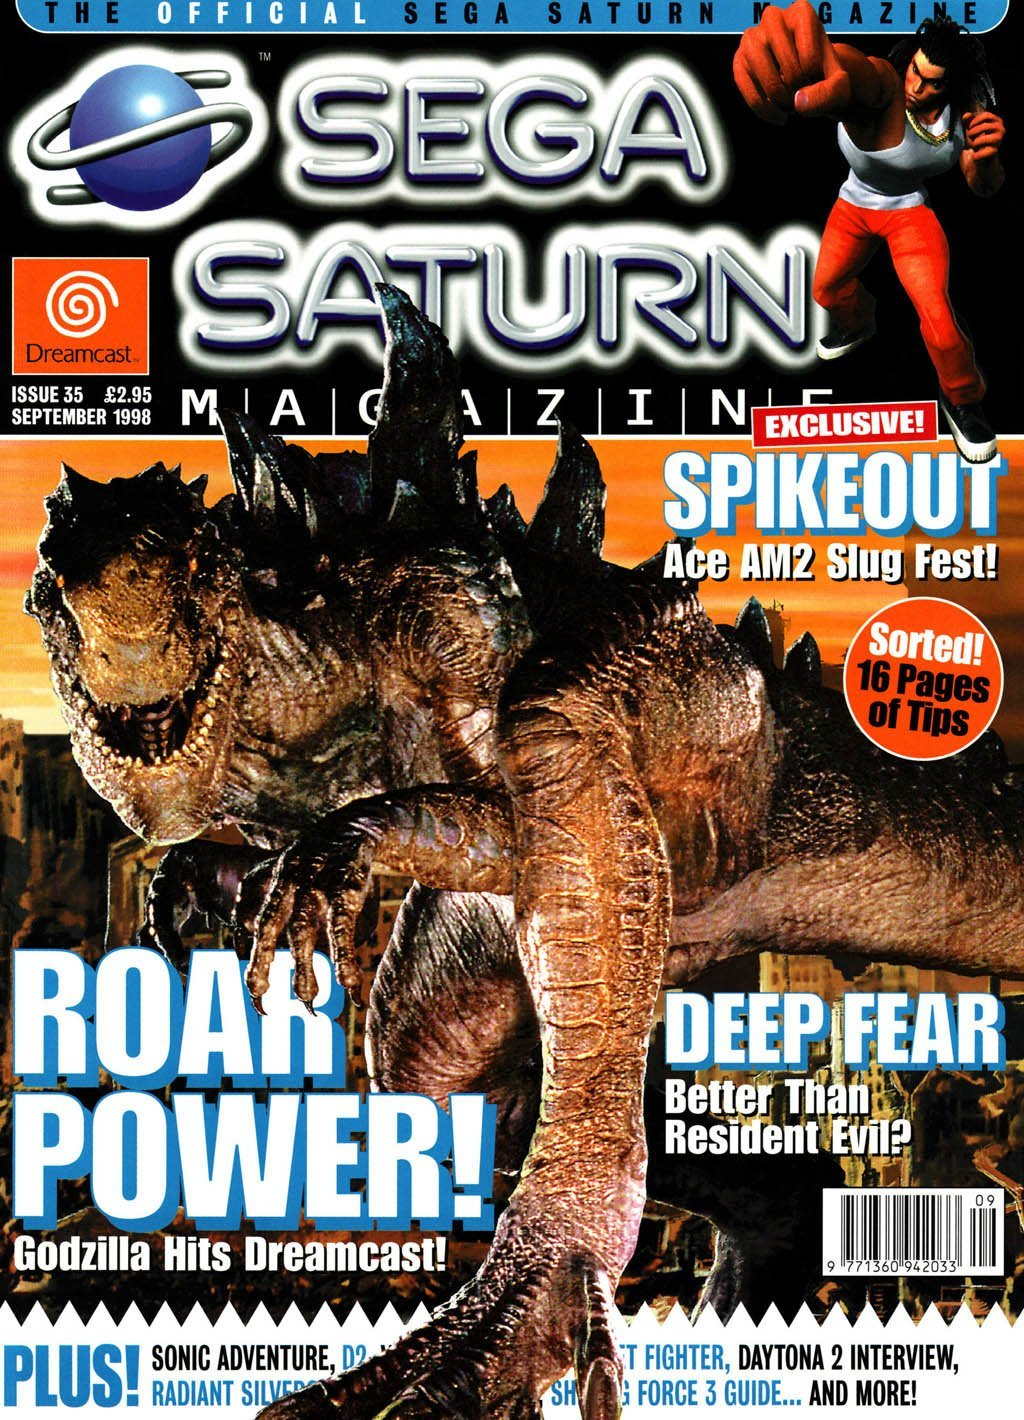 Official Sega Saturn Magazine 35 (September 1998)